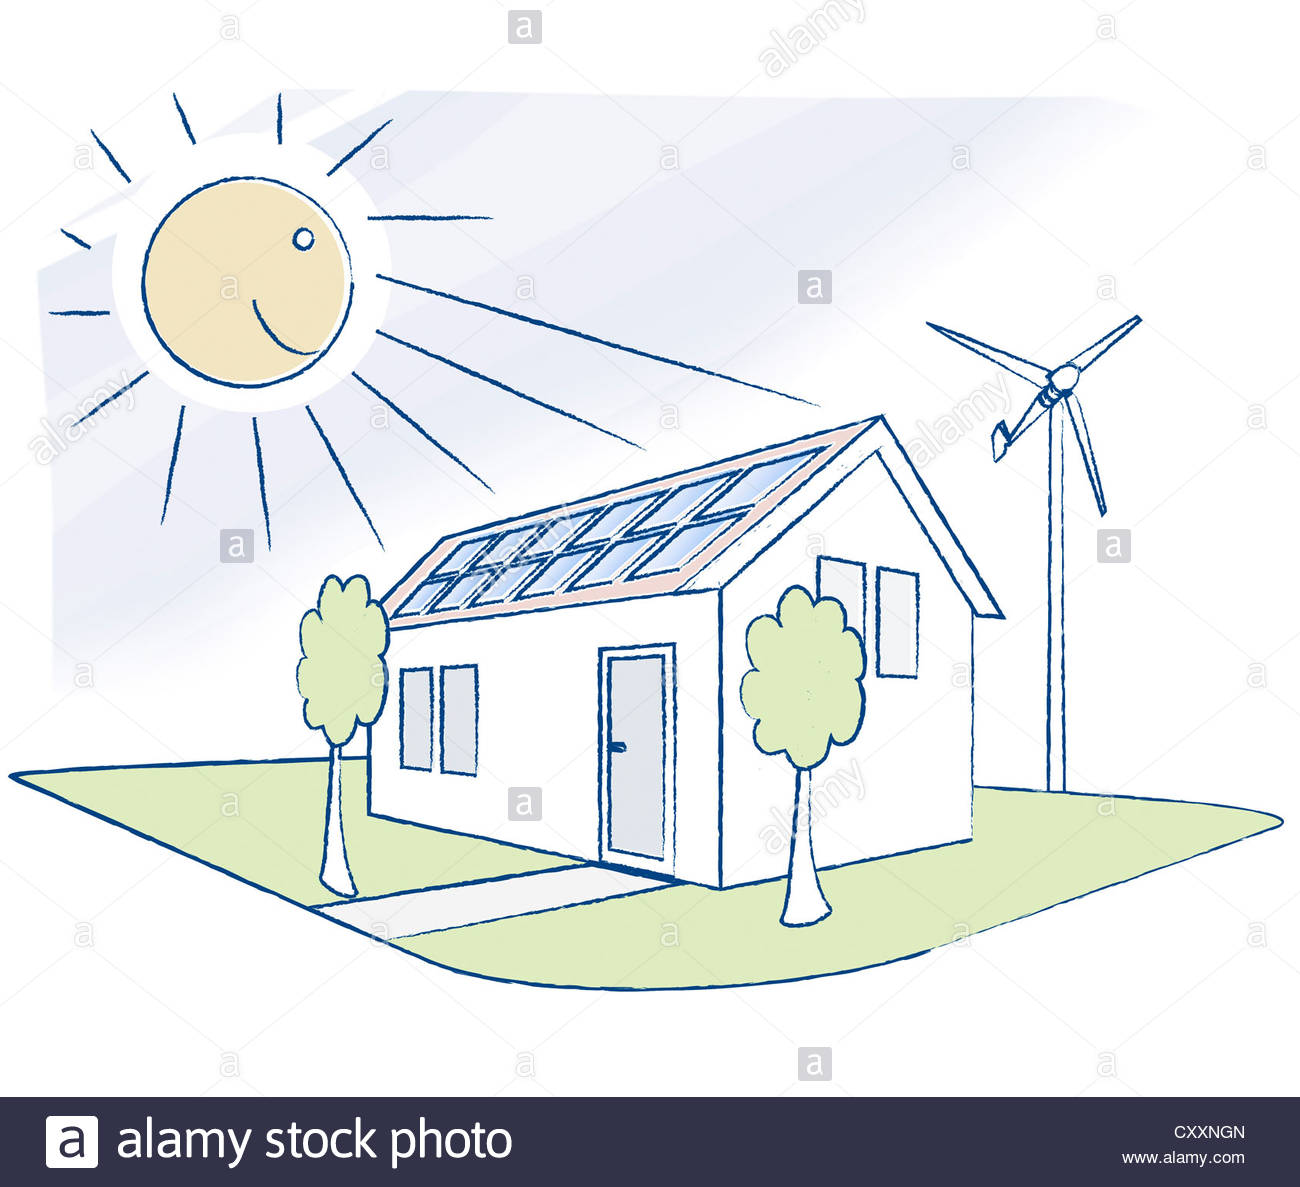 1300x1187 House With Solar Panels And A Small Wind Turbine, Illustration